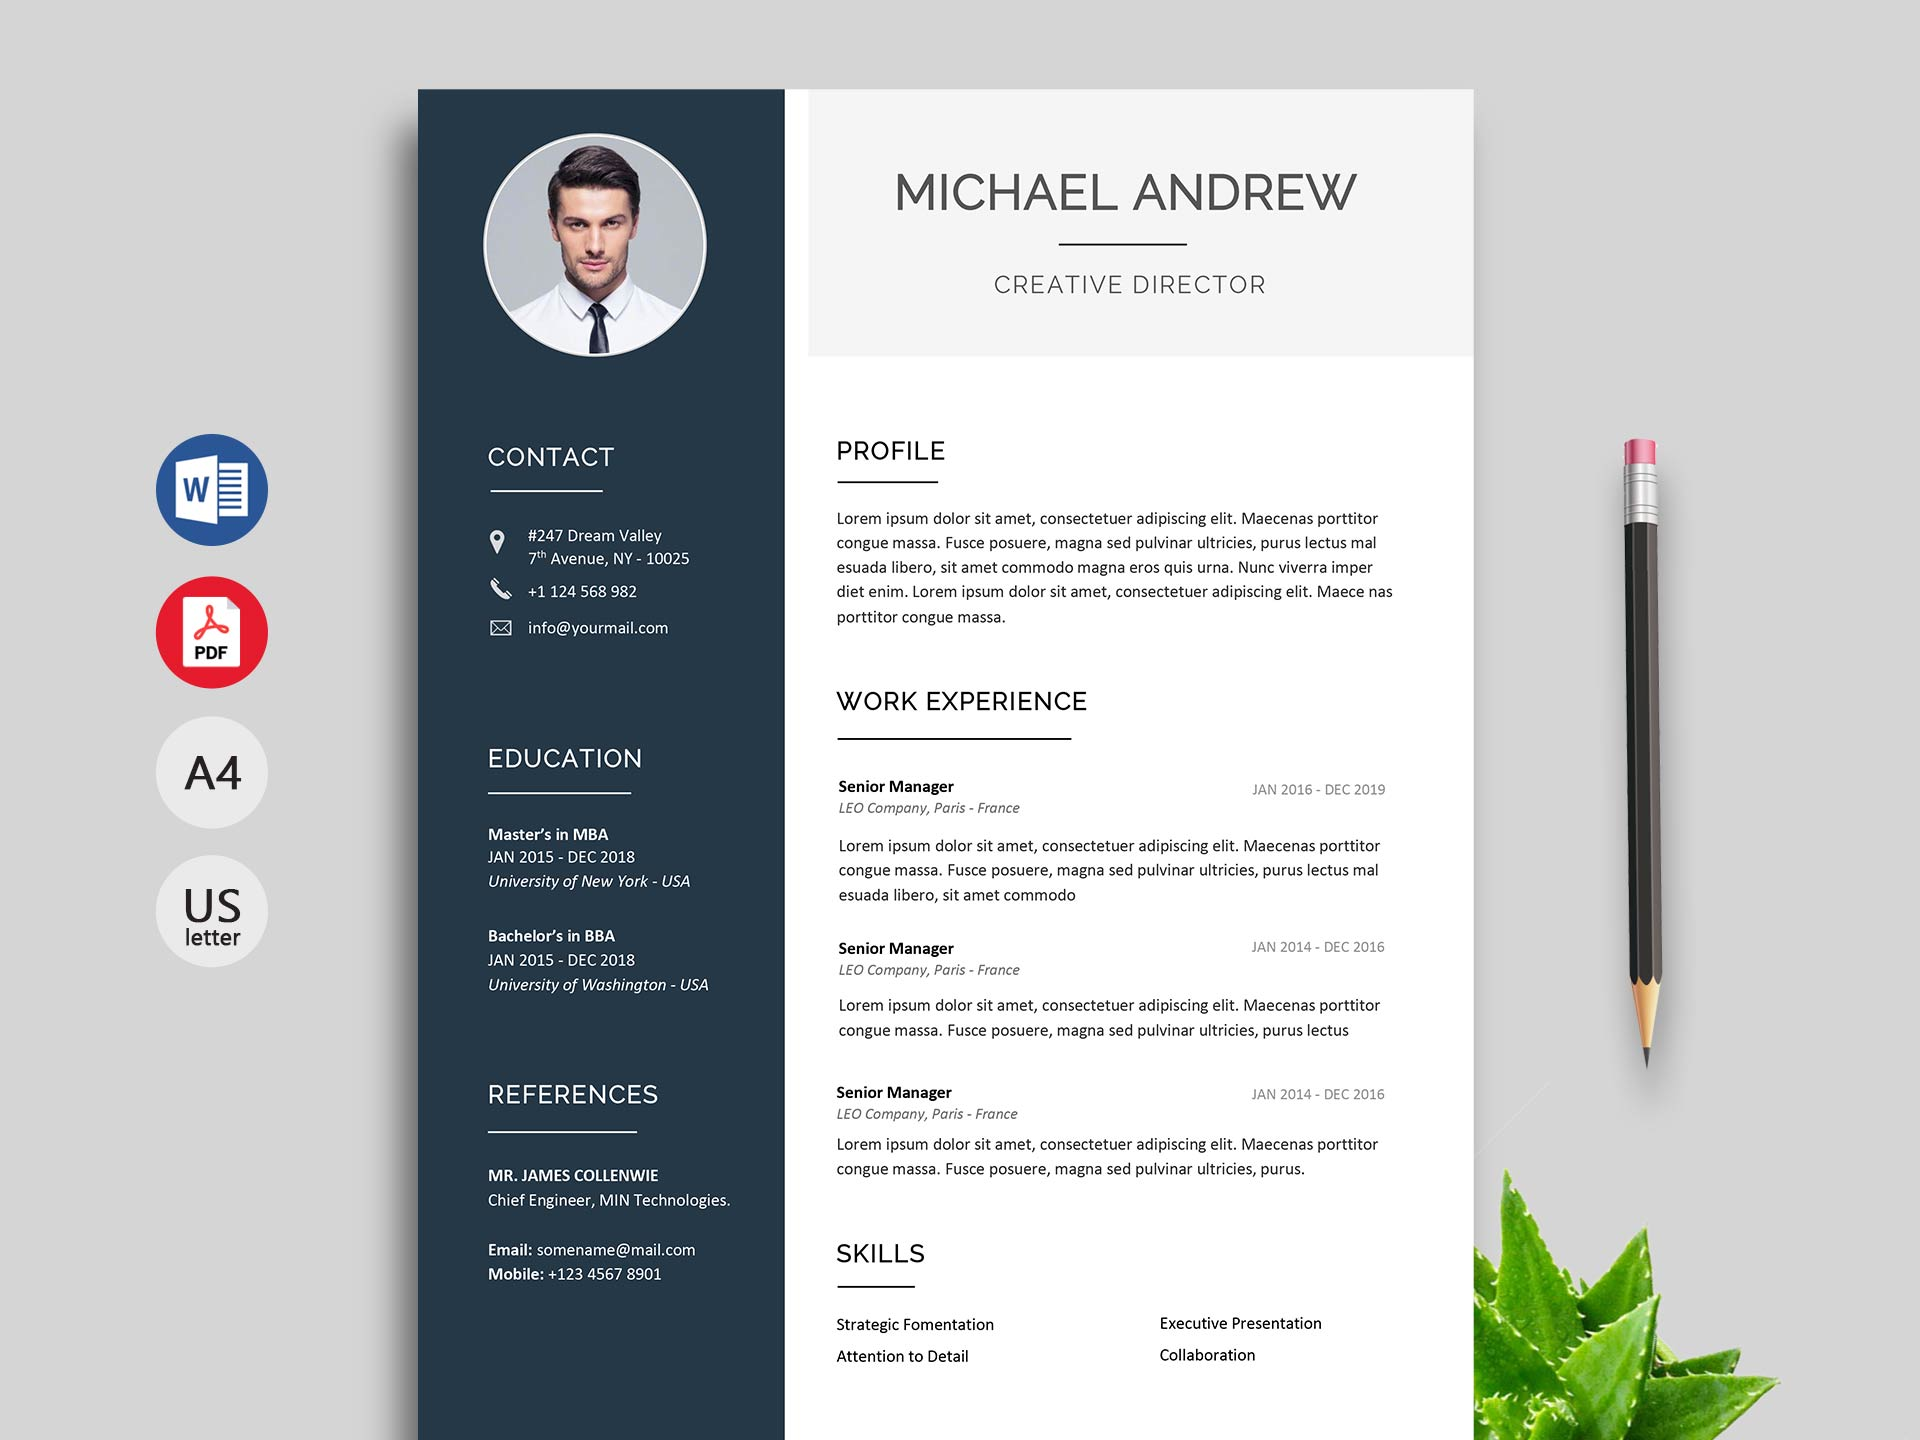 free resume cv templates in word format resumekraft current prime template banking sample Resume Current Resume Templates 2020